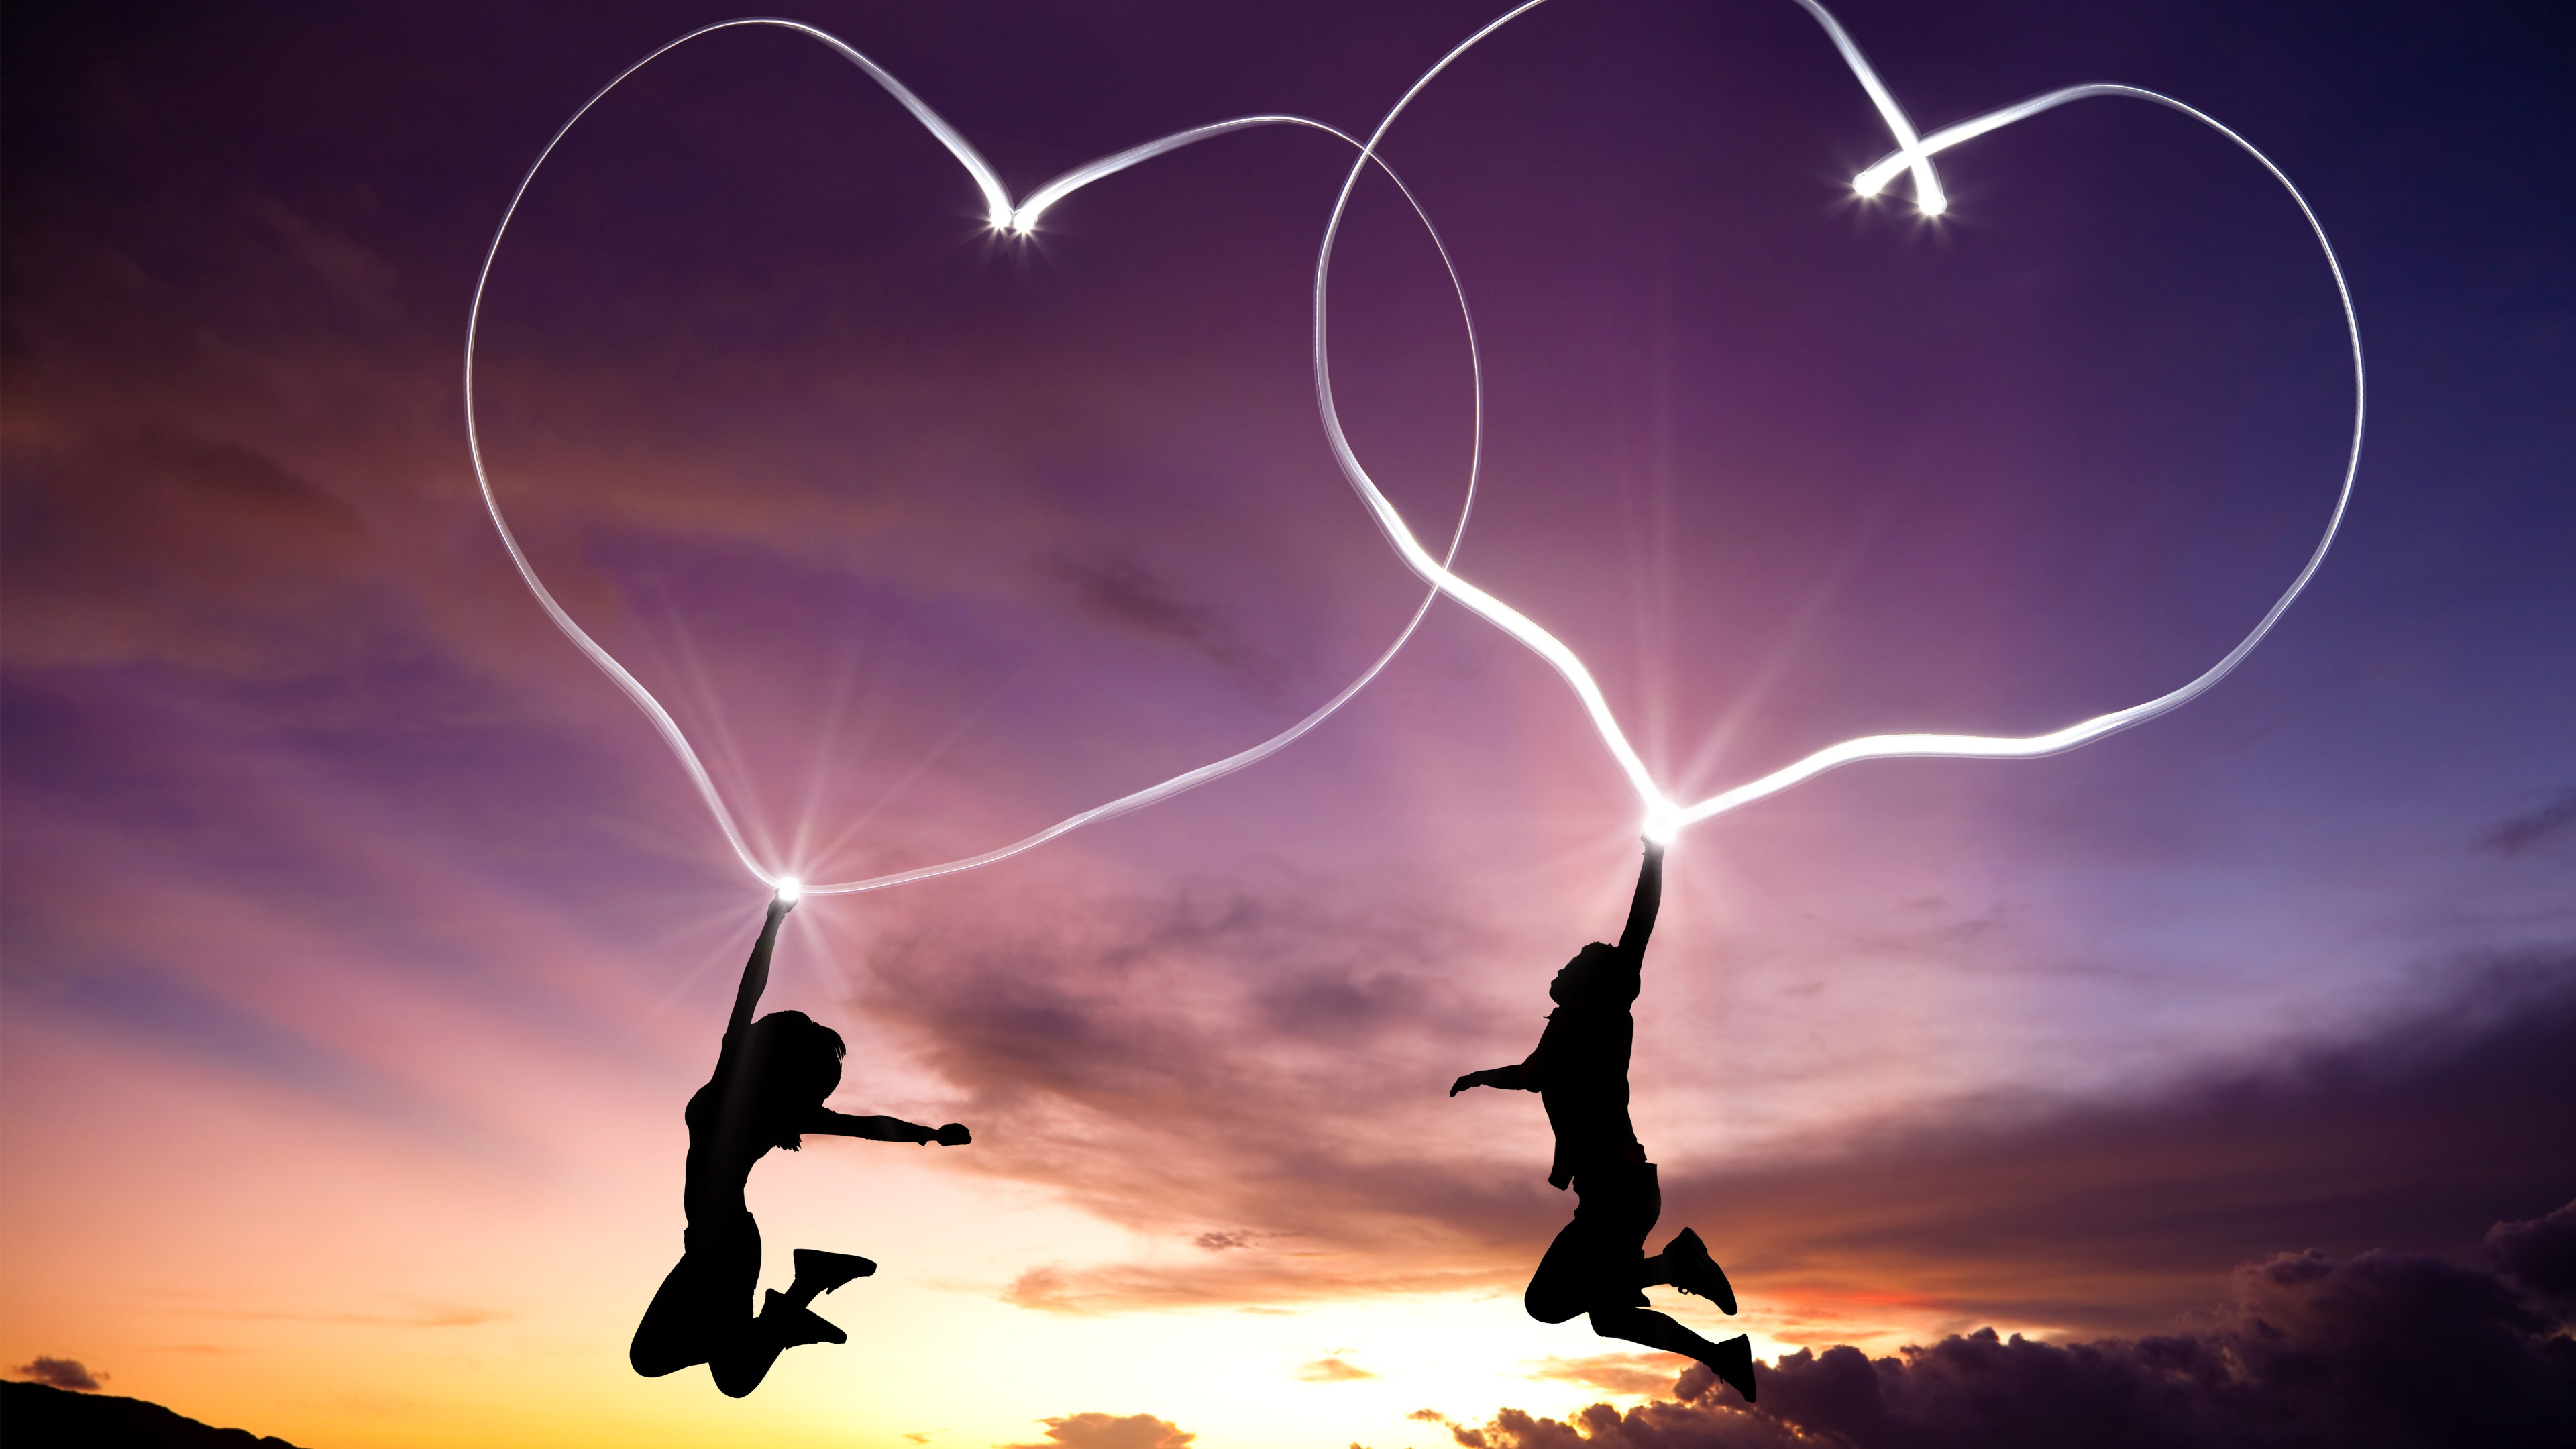 the perception of love This study investigated perceptions of love across the lifespan using sternberg's triangular theory of love, which distinguishes between passion, intimacy, and commitment.